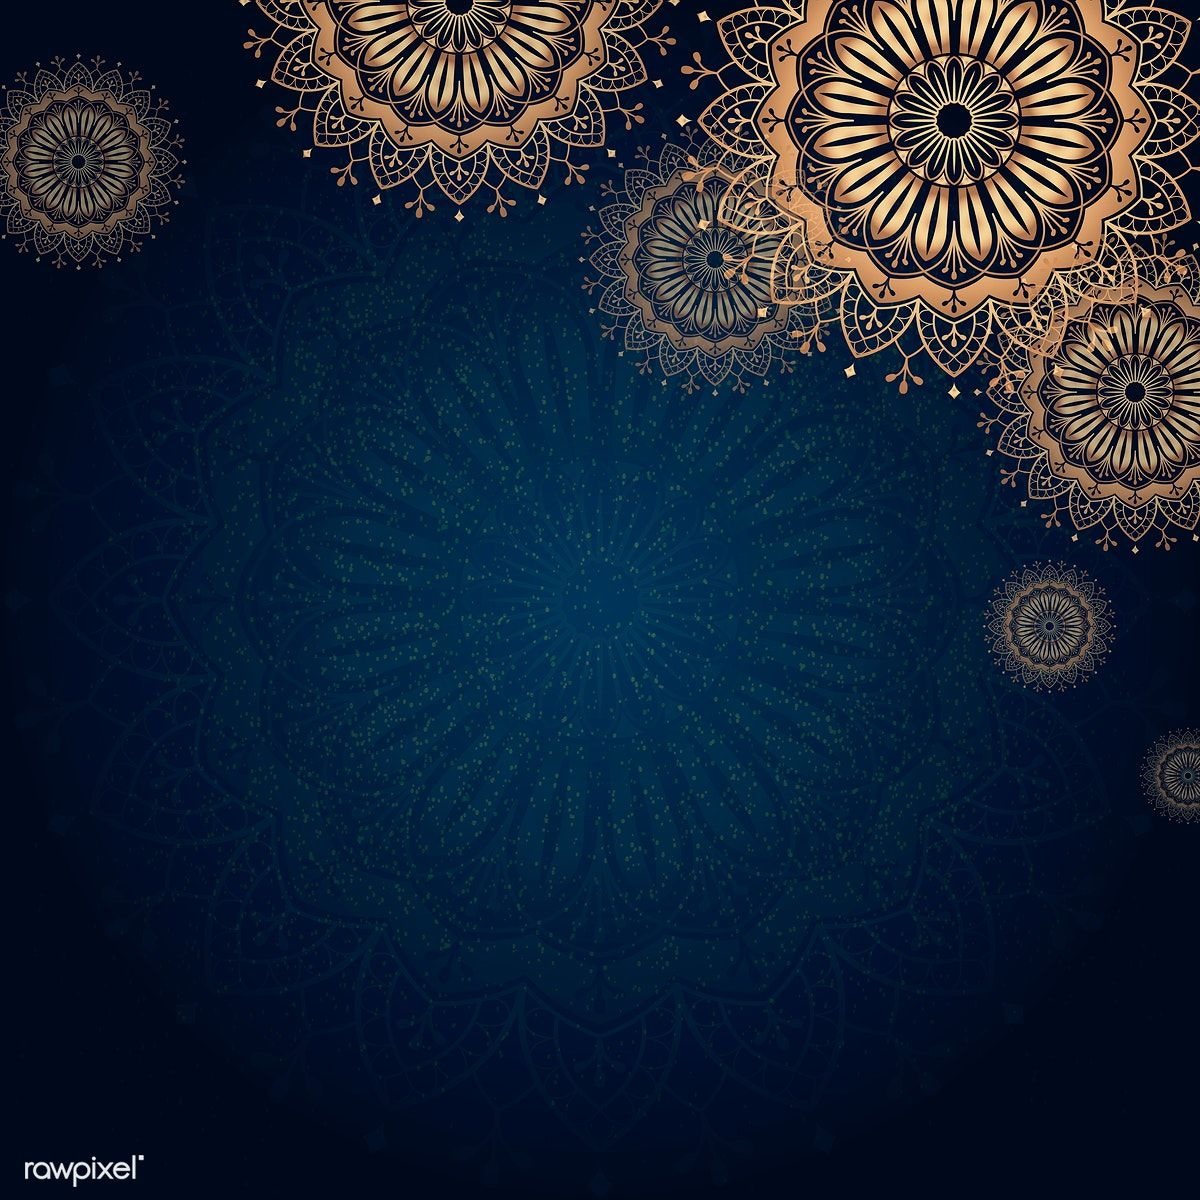 Download premium vector of Gold mandala on navy blue background 1200x1200